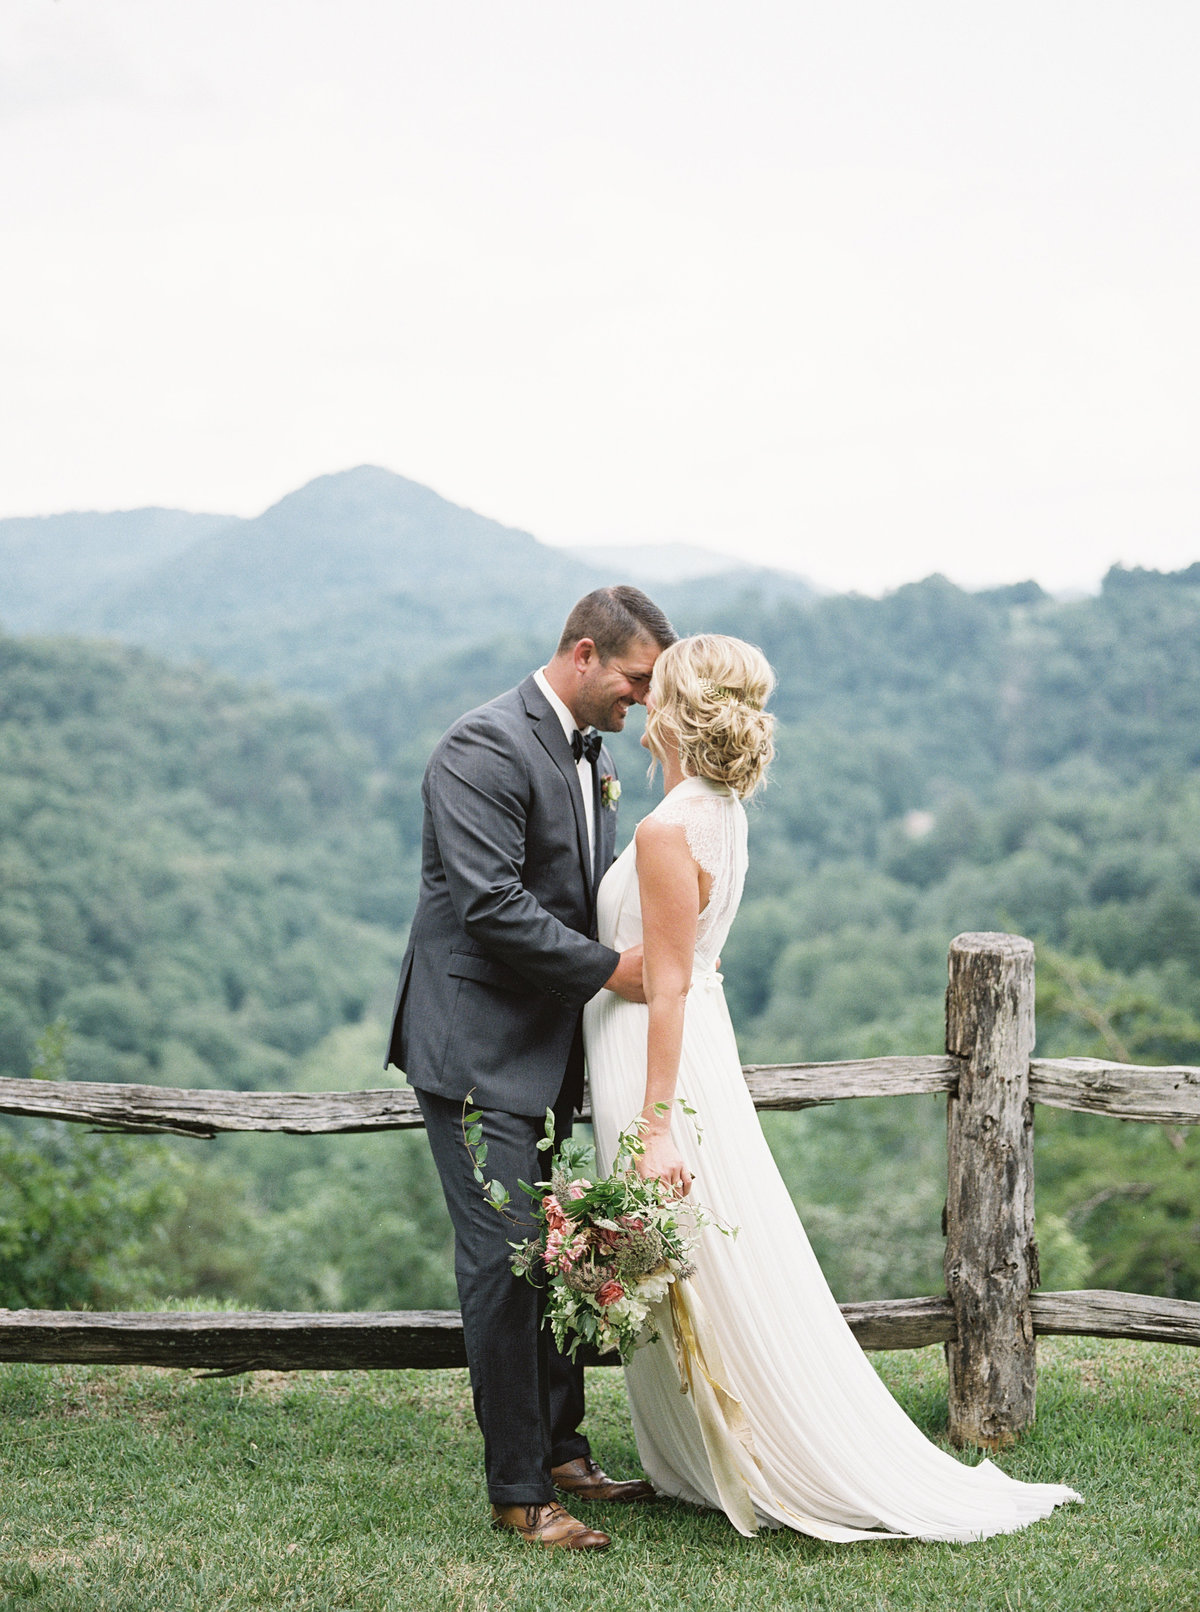 ©holeighvphotography_CastleLadyhawkeWeddingInspiration-155